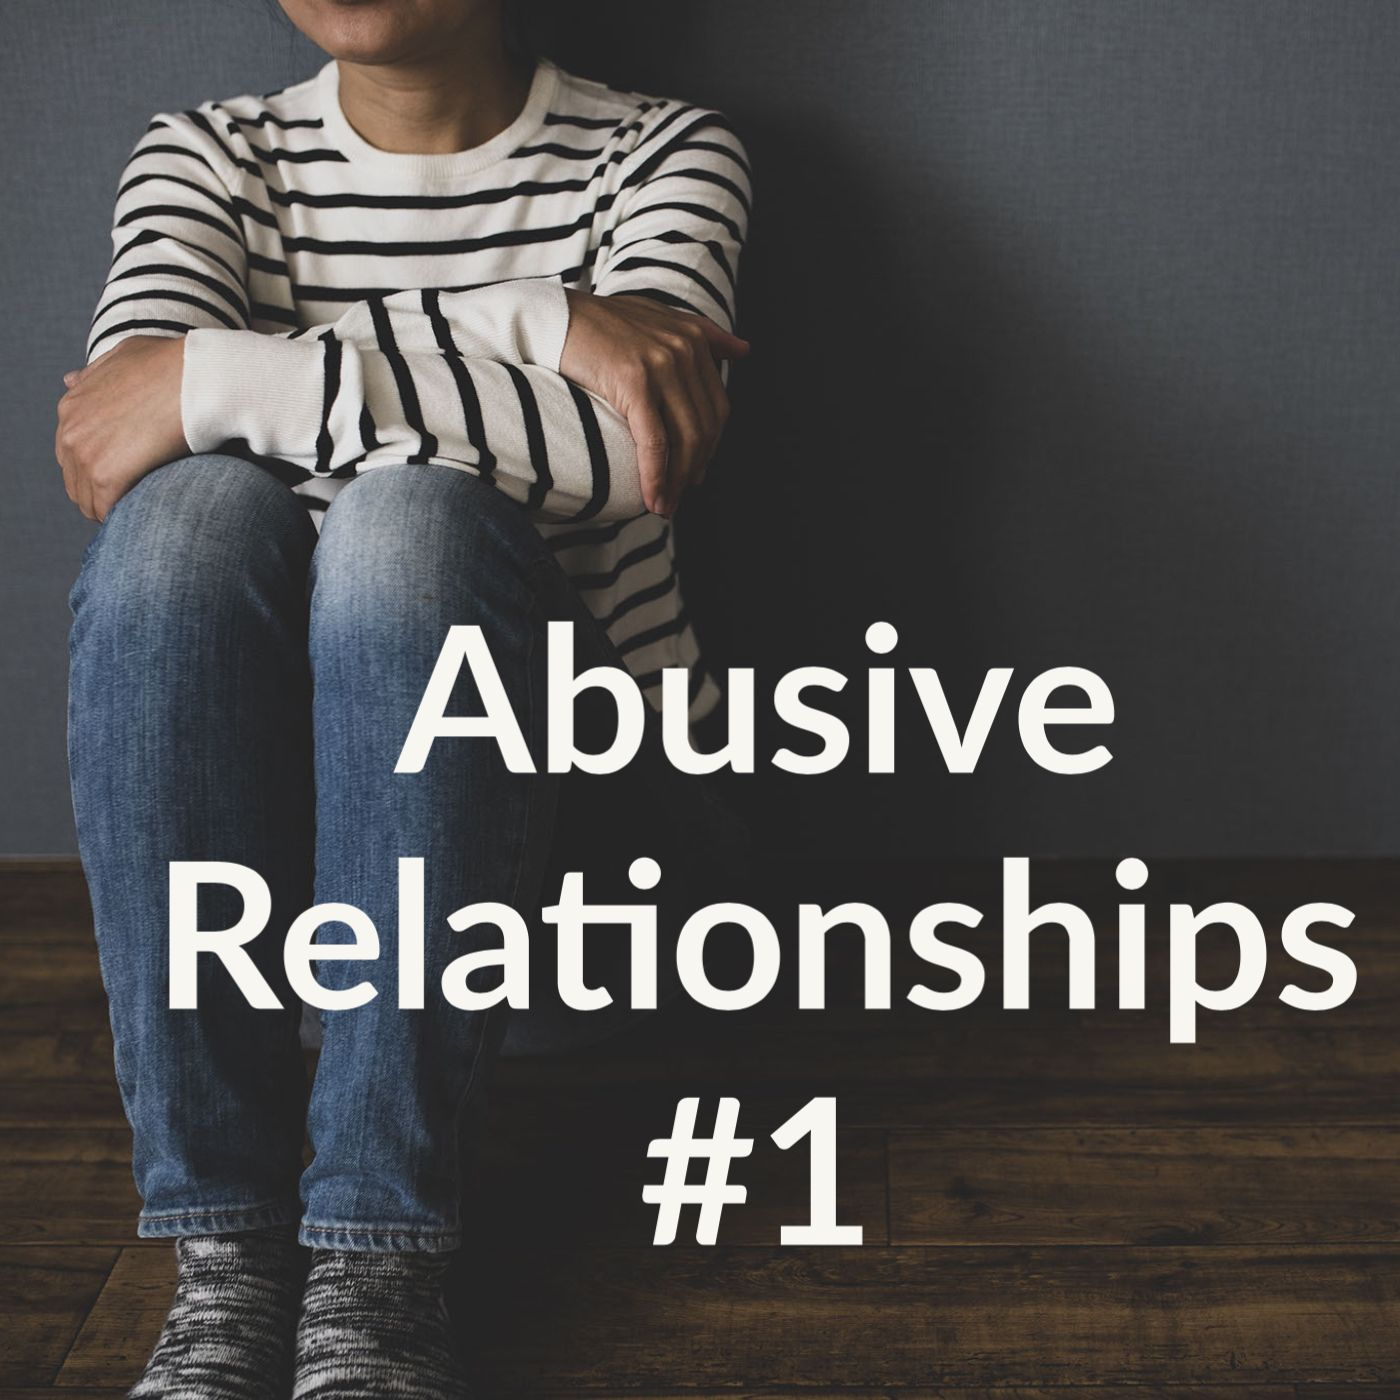 Abusive Relationships #1